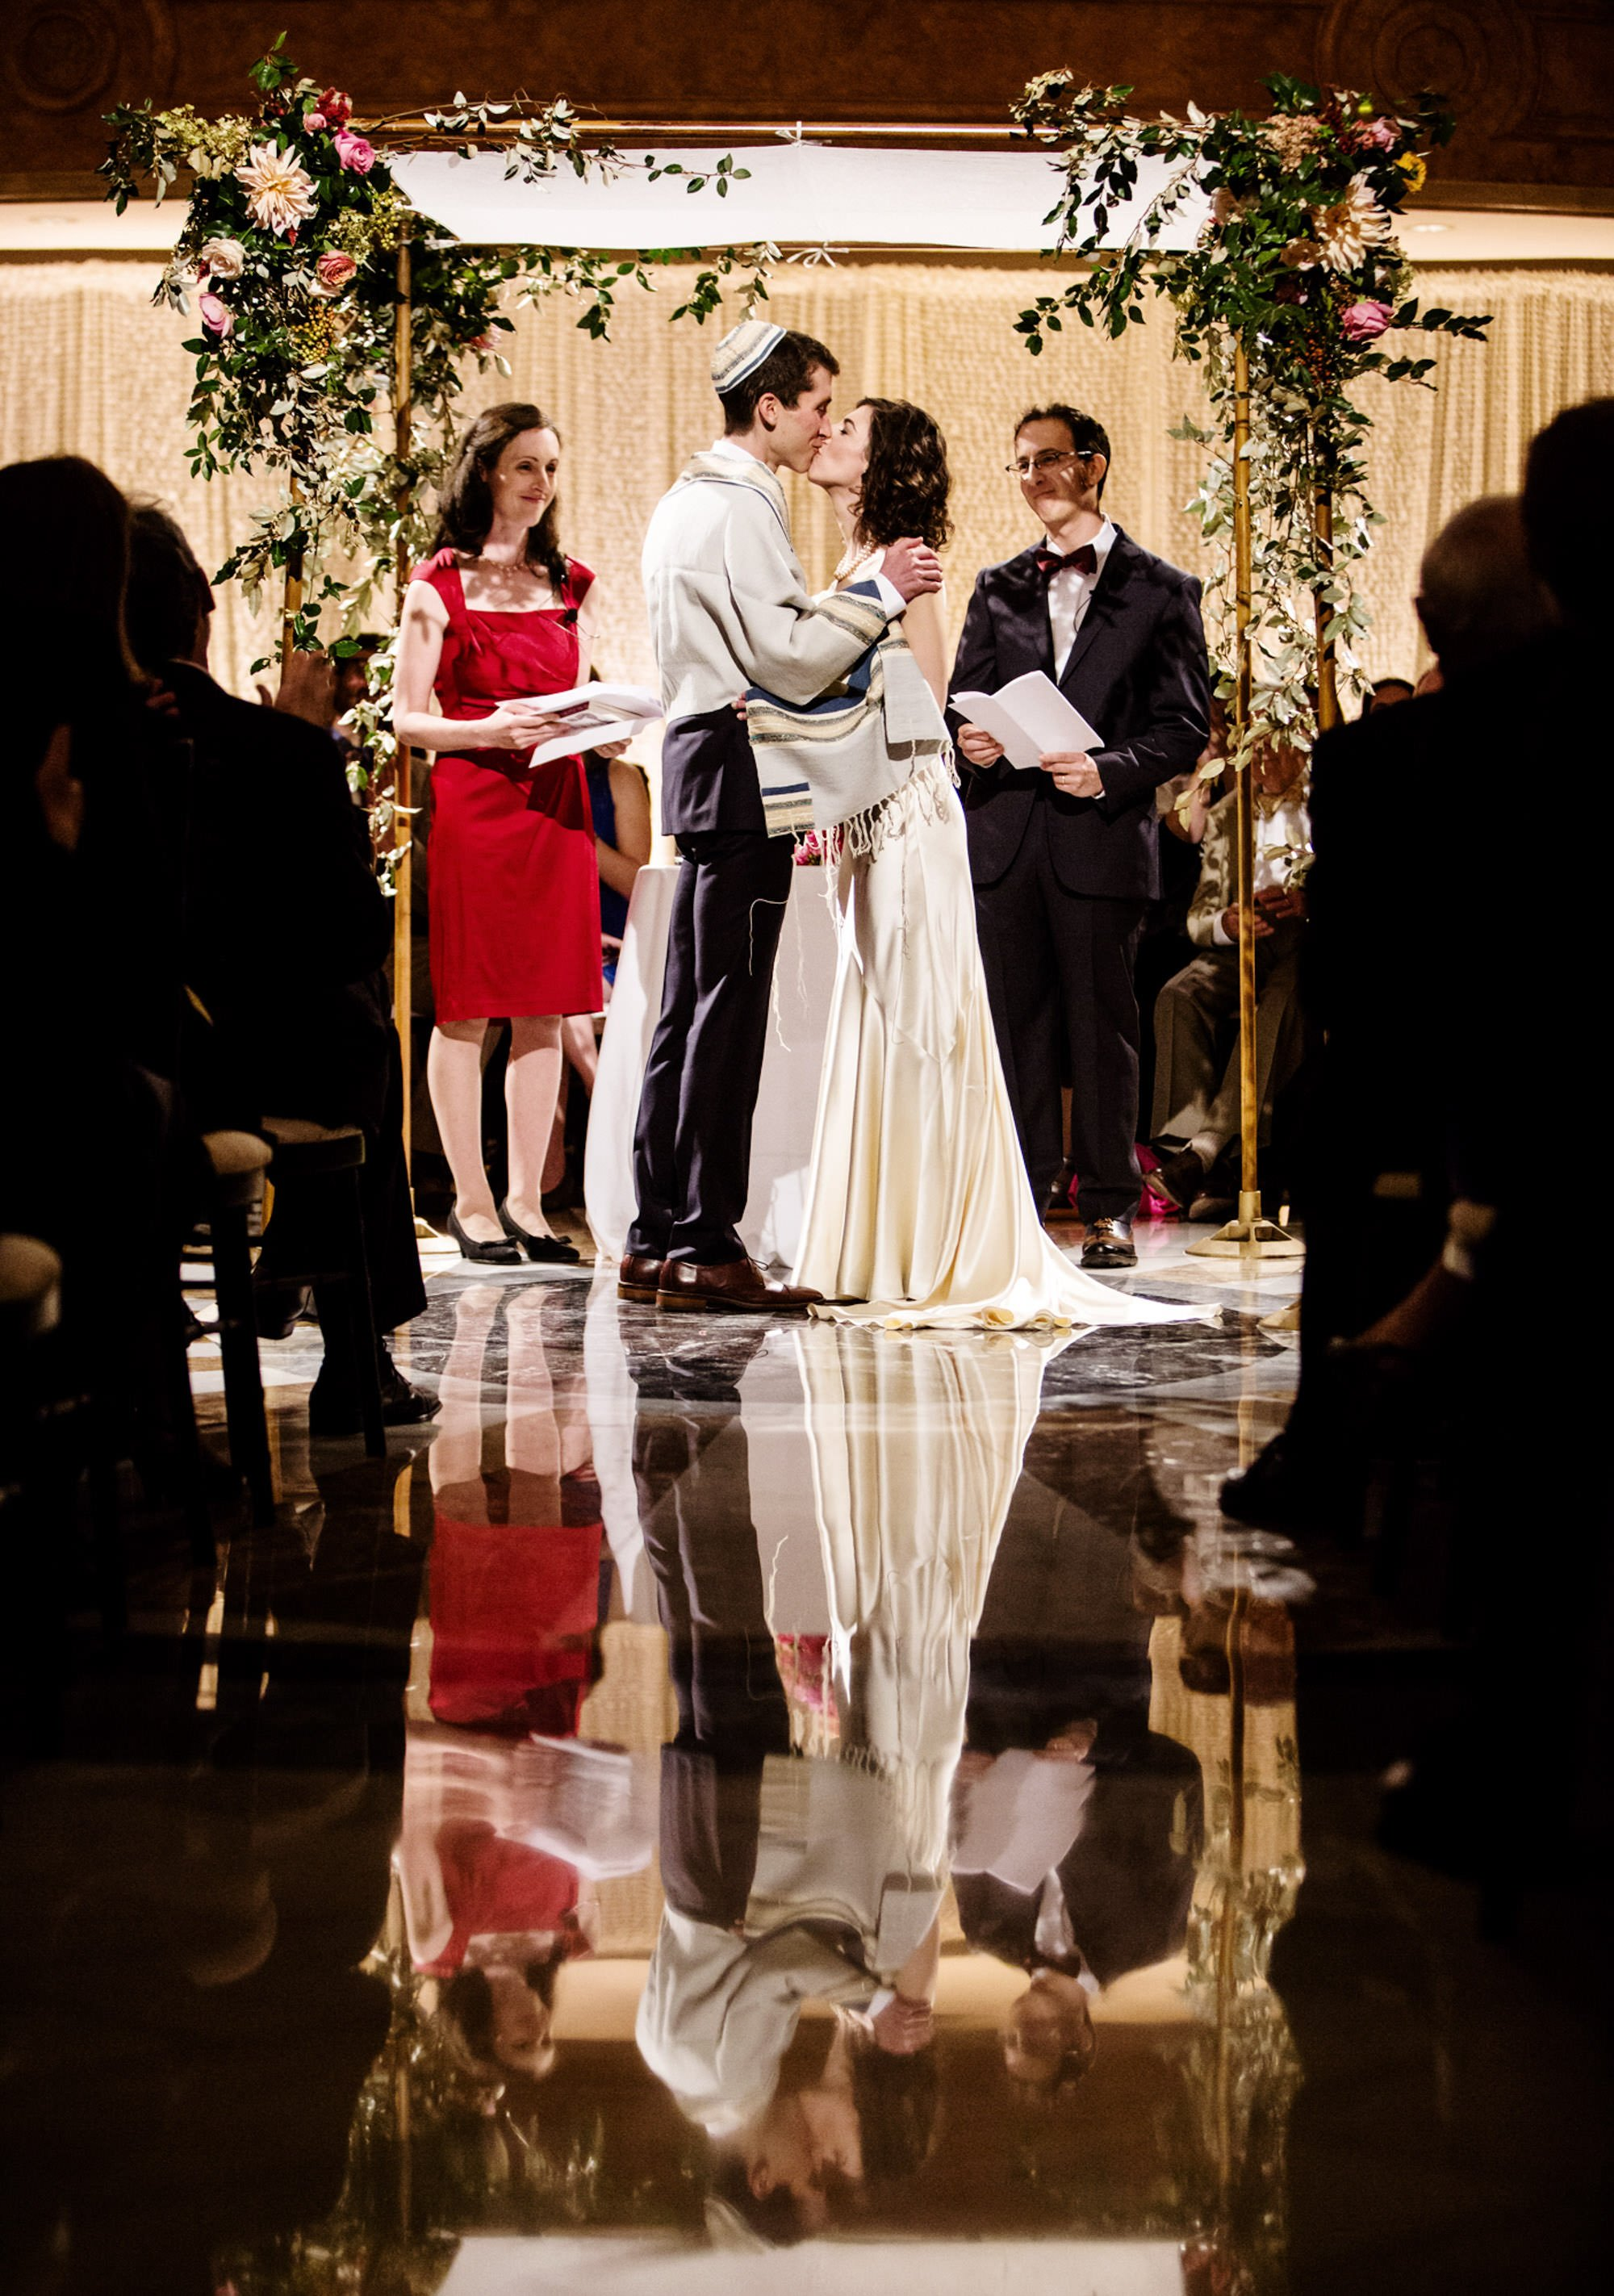 The bride and groom share their first kiss under the chuppah during their wedding ceremony.